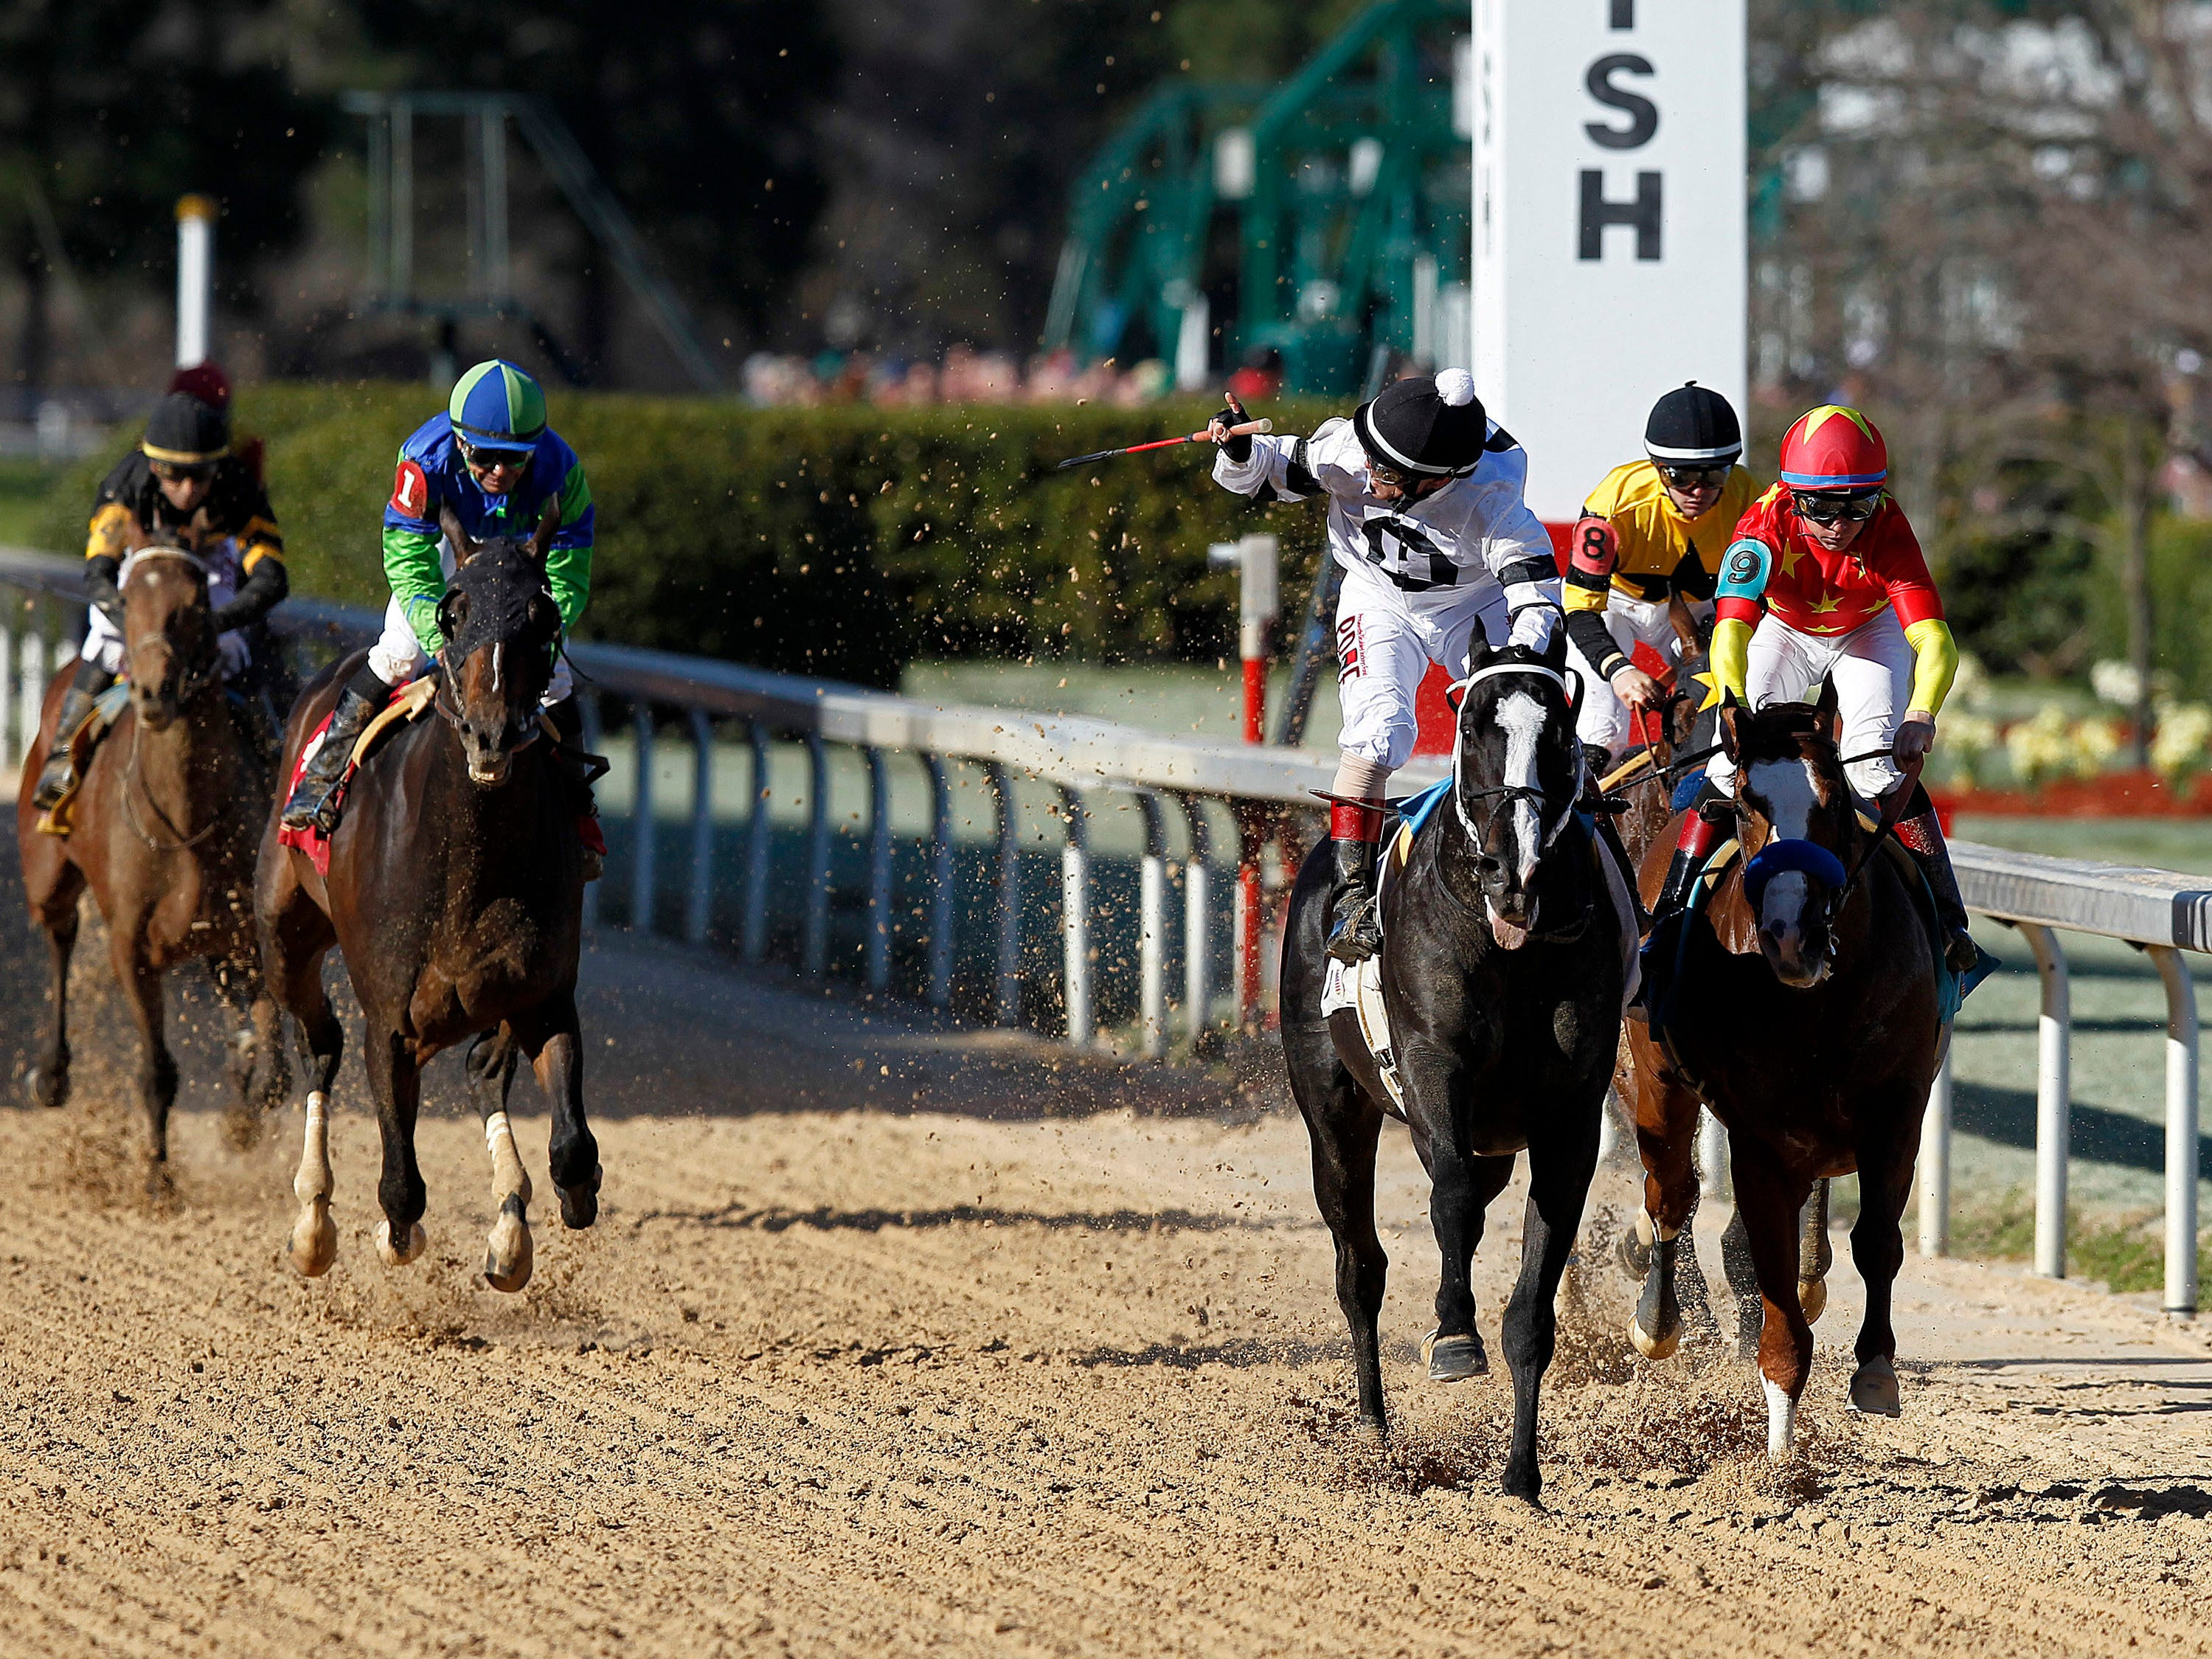 Jockey Jon Court celebrates after Long Range Toddy beat Improbable ridden by jockey Drayden Van Dyke (9) and Galilean ridden by jockey Flavien Prat (8) to win the first division of the Rebel Stakes horse race, Saturday, March 16, 2019, at Oaklawn Park in Hot Springs, Ark.